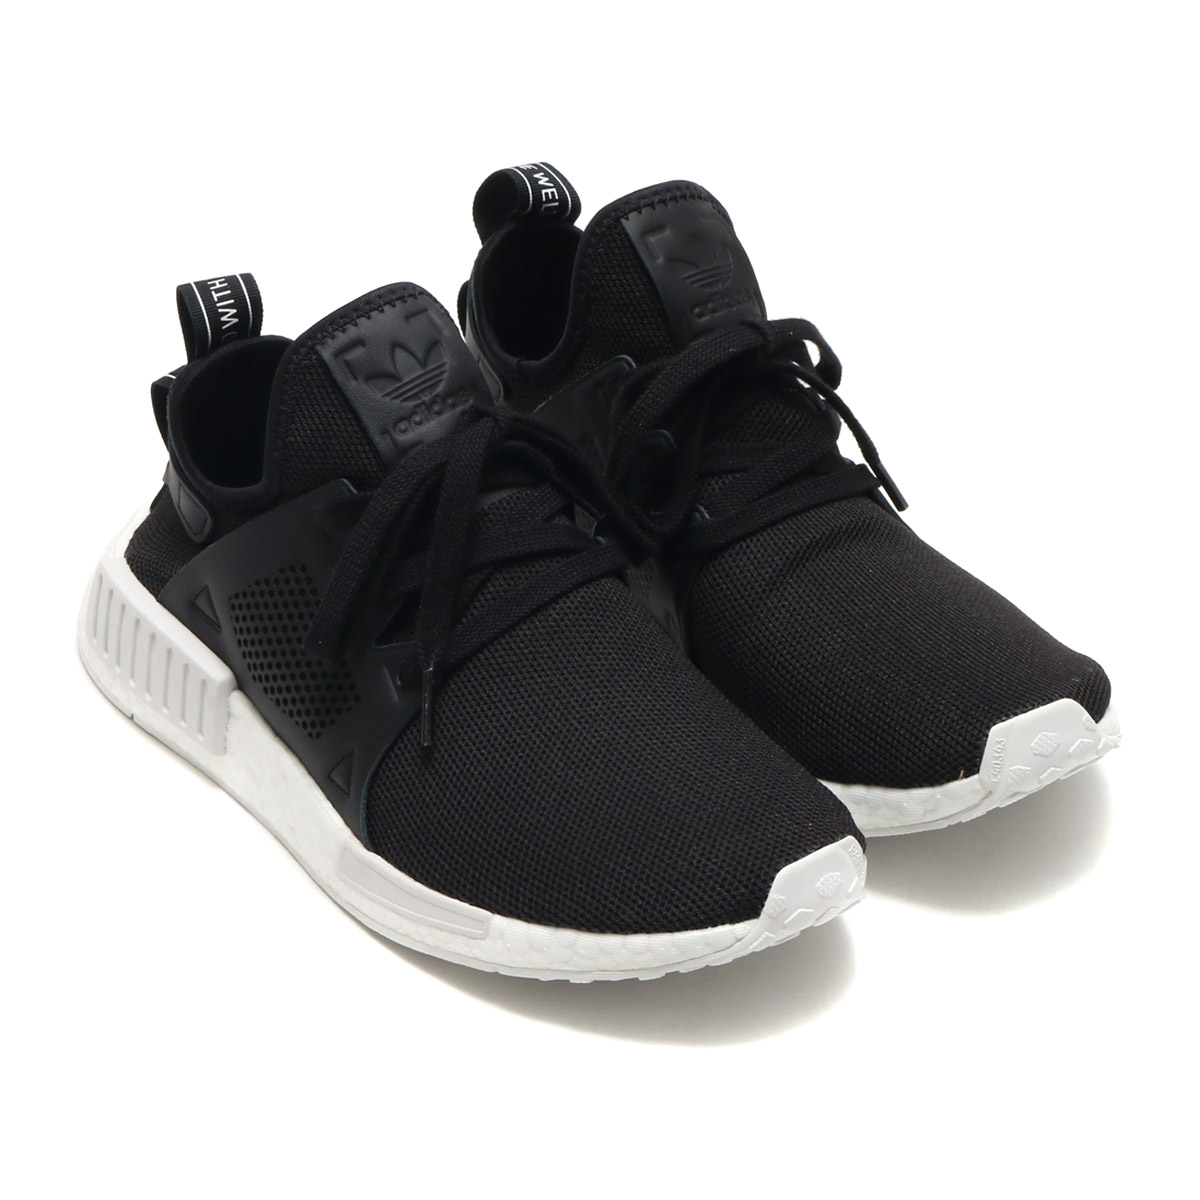 COM BA7233 adidas Shoes Nmd_XR1 white/black 2016 Men